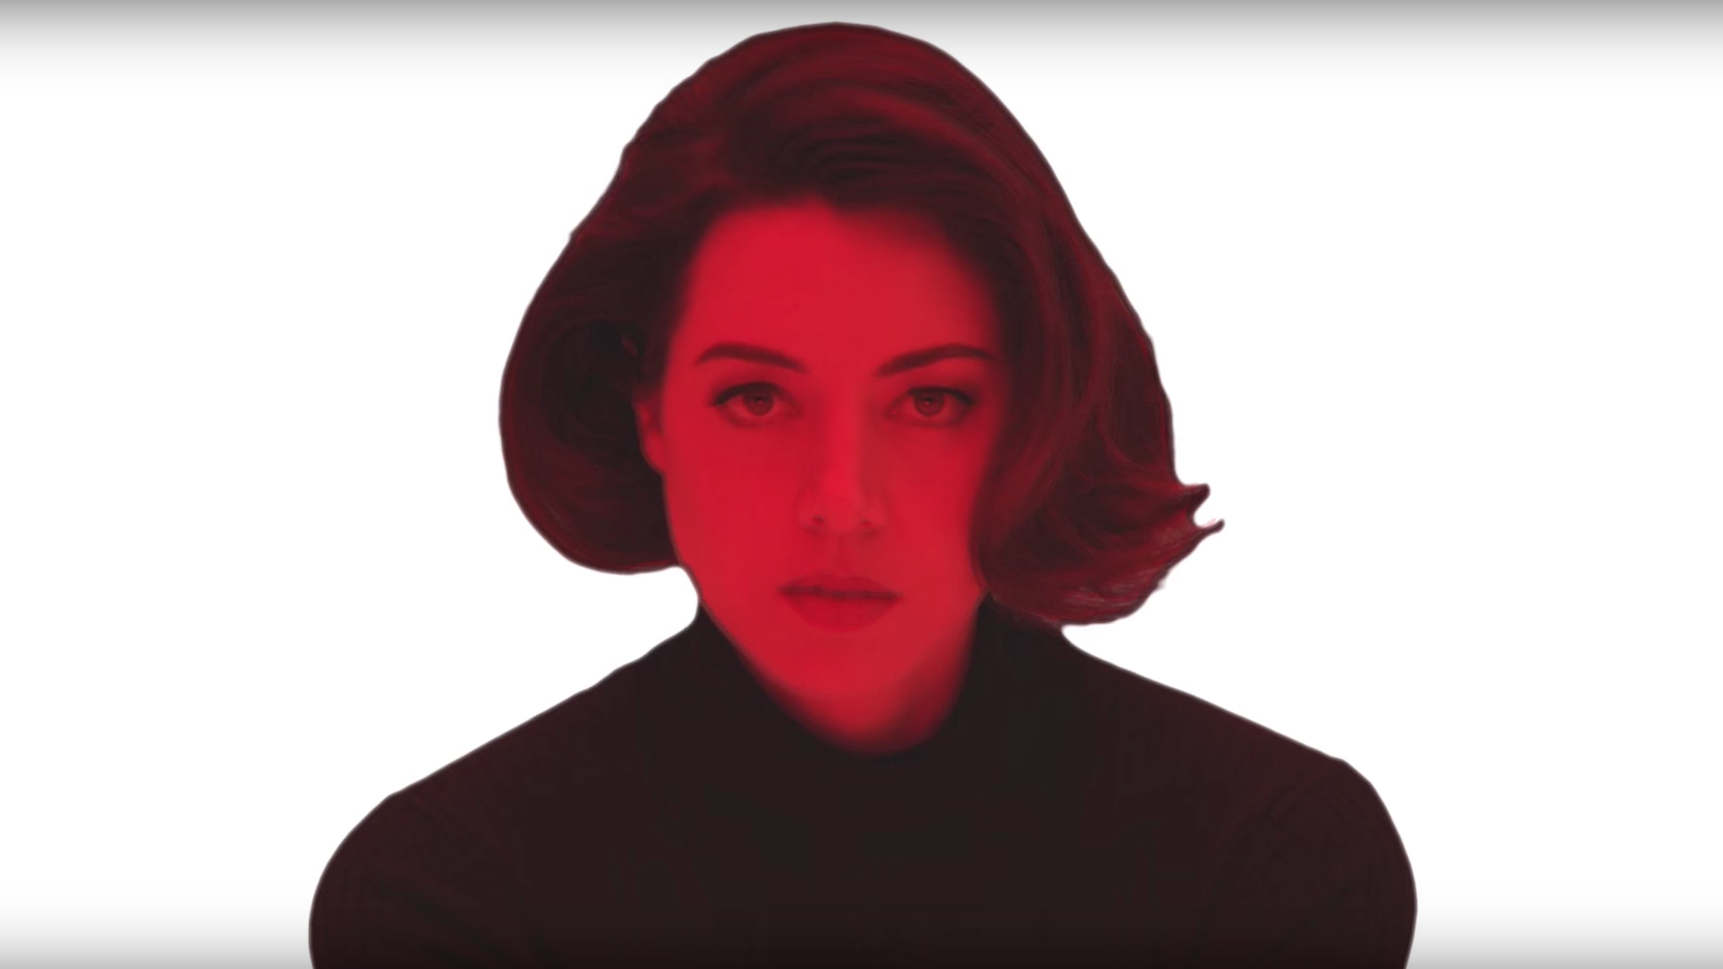 Legion's Aubrey Plaza Tries To Get In Your Head In This MetaTeaser Trailer